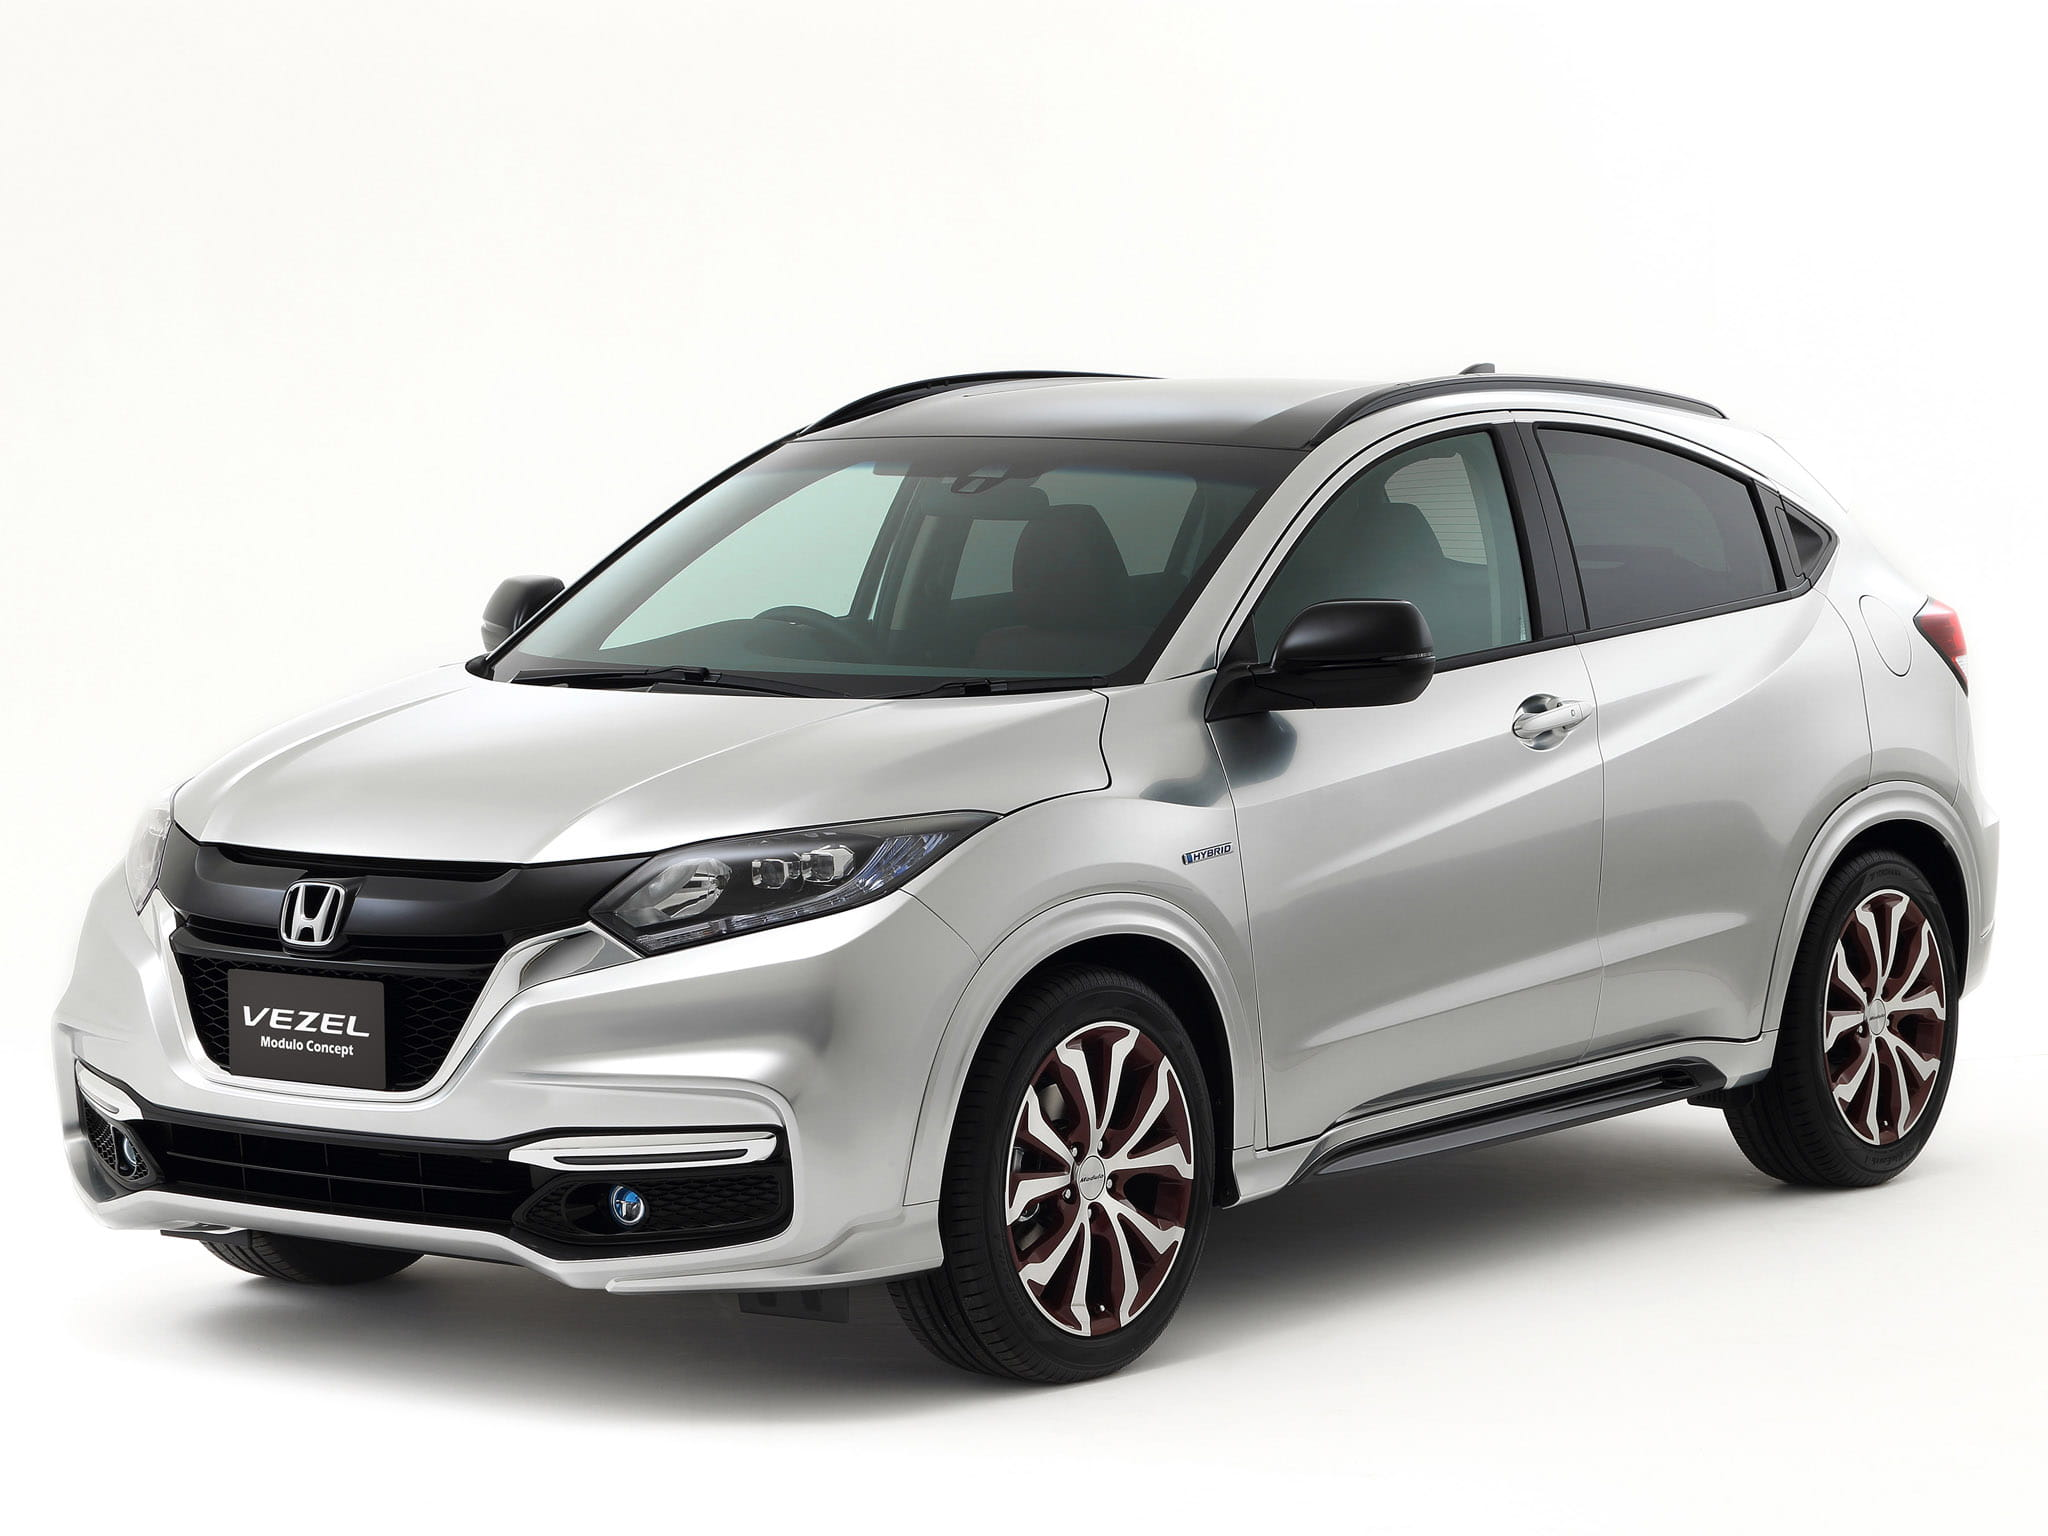 Honda Vezel Compact Suv India Launch Details And Images | 2017 - 2018 ...